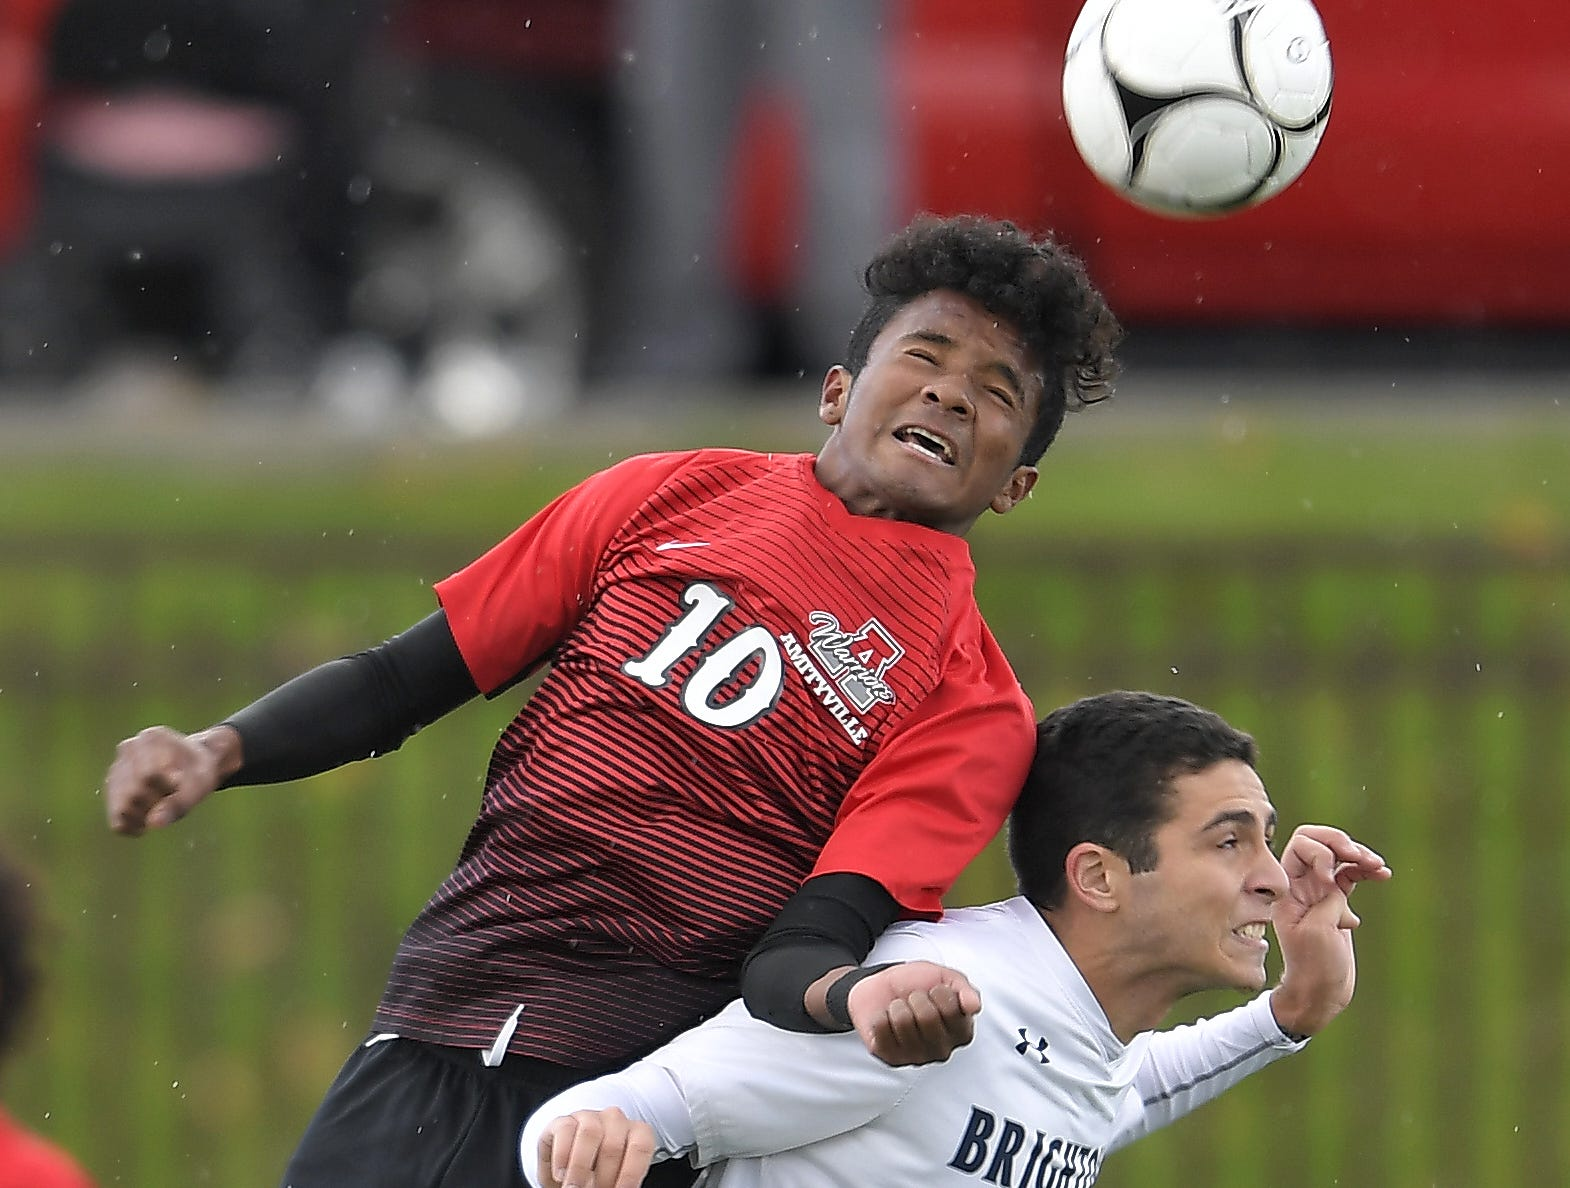 Amityville's Henry Martinez, left, jumps for a header over Brighton's Caio De Medeiros during a Class A semifinal at the NYSPHSAA Boys Soccer Championships in Newburgh, N.Y., Saturday, Nov. 10, 2018.